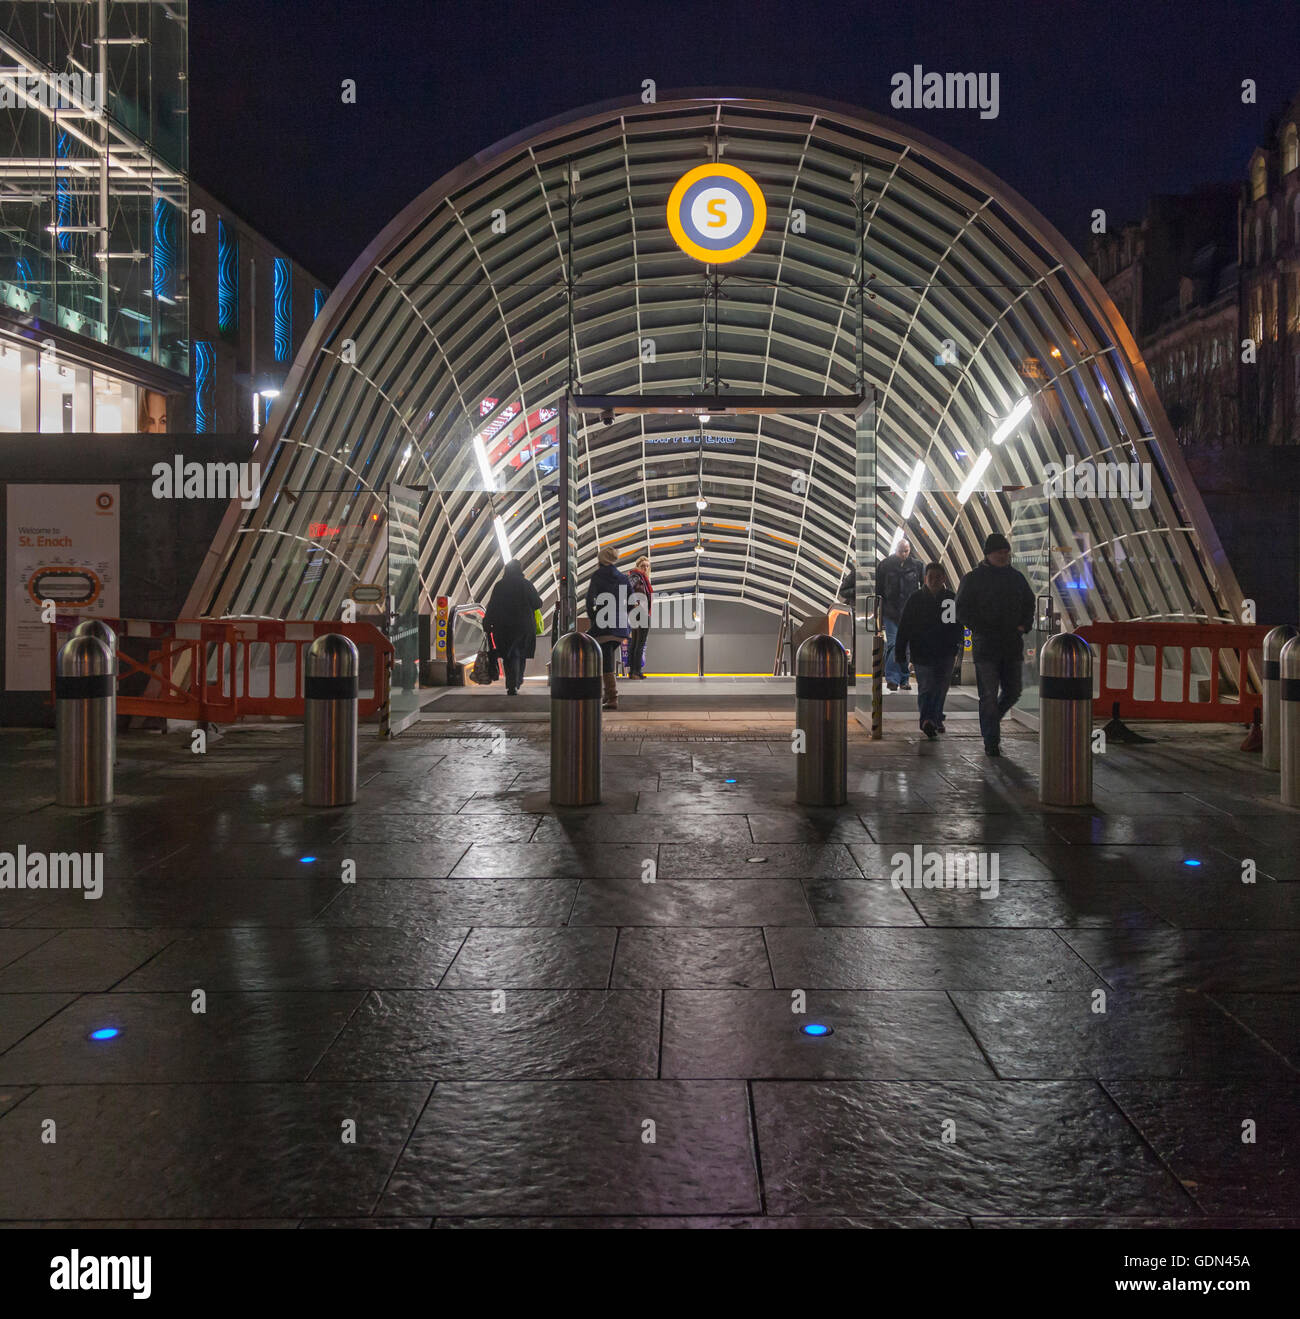 Passengers entering and exiting from St Enoch Subway station in central Glasgow. - Stock Image